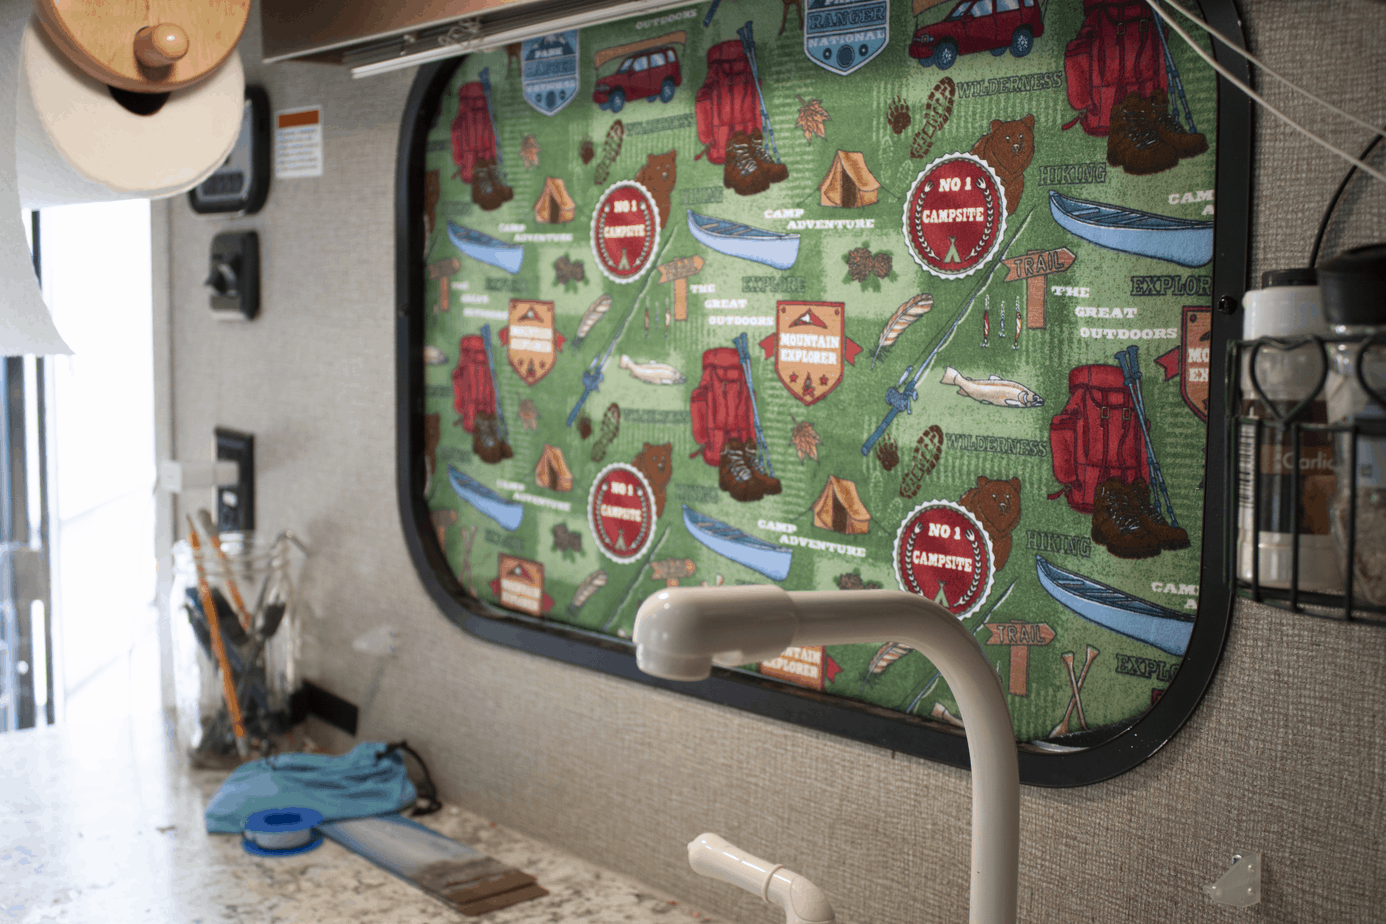 How To Diy Rv Blackout Window Covers For Your Rv Or Camper No Sewing Involved The Crazy Outdoor Mama